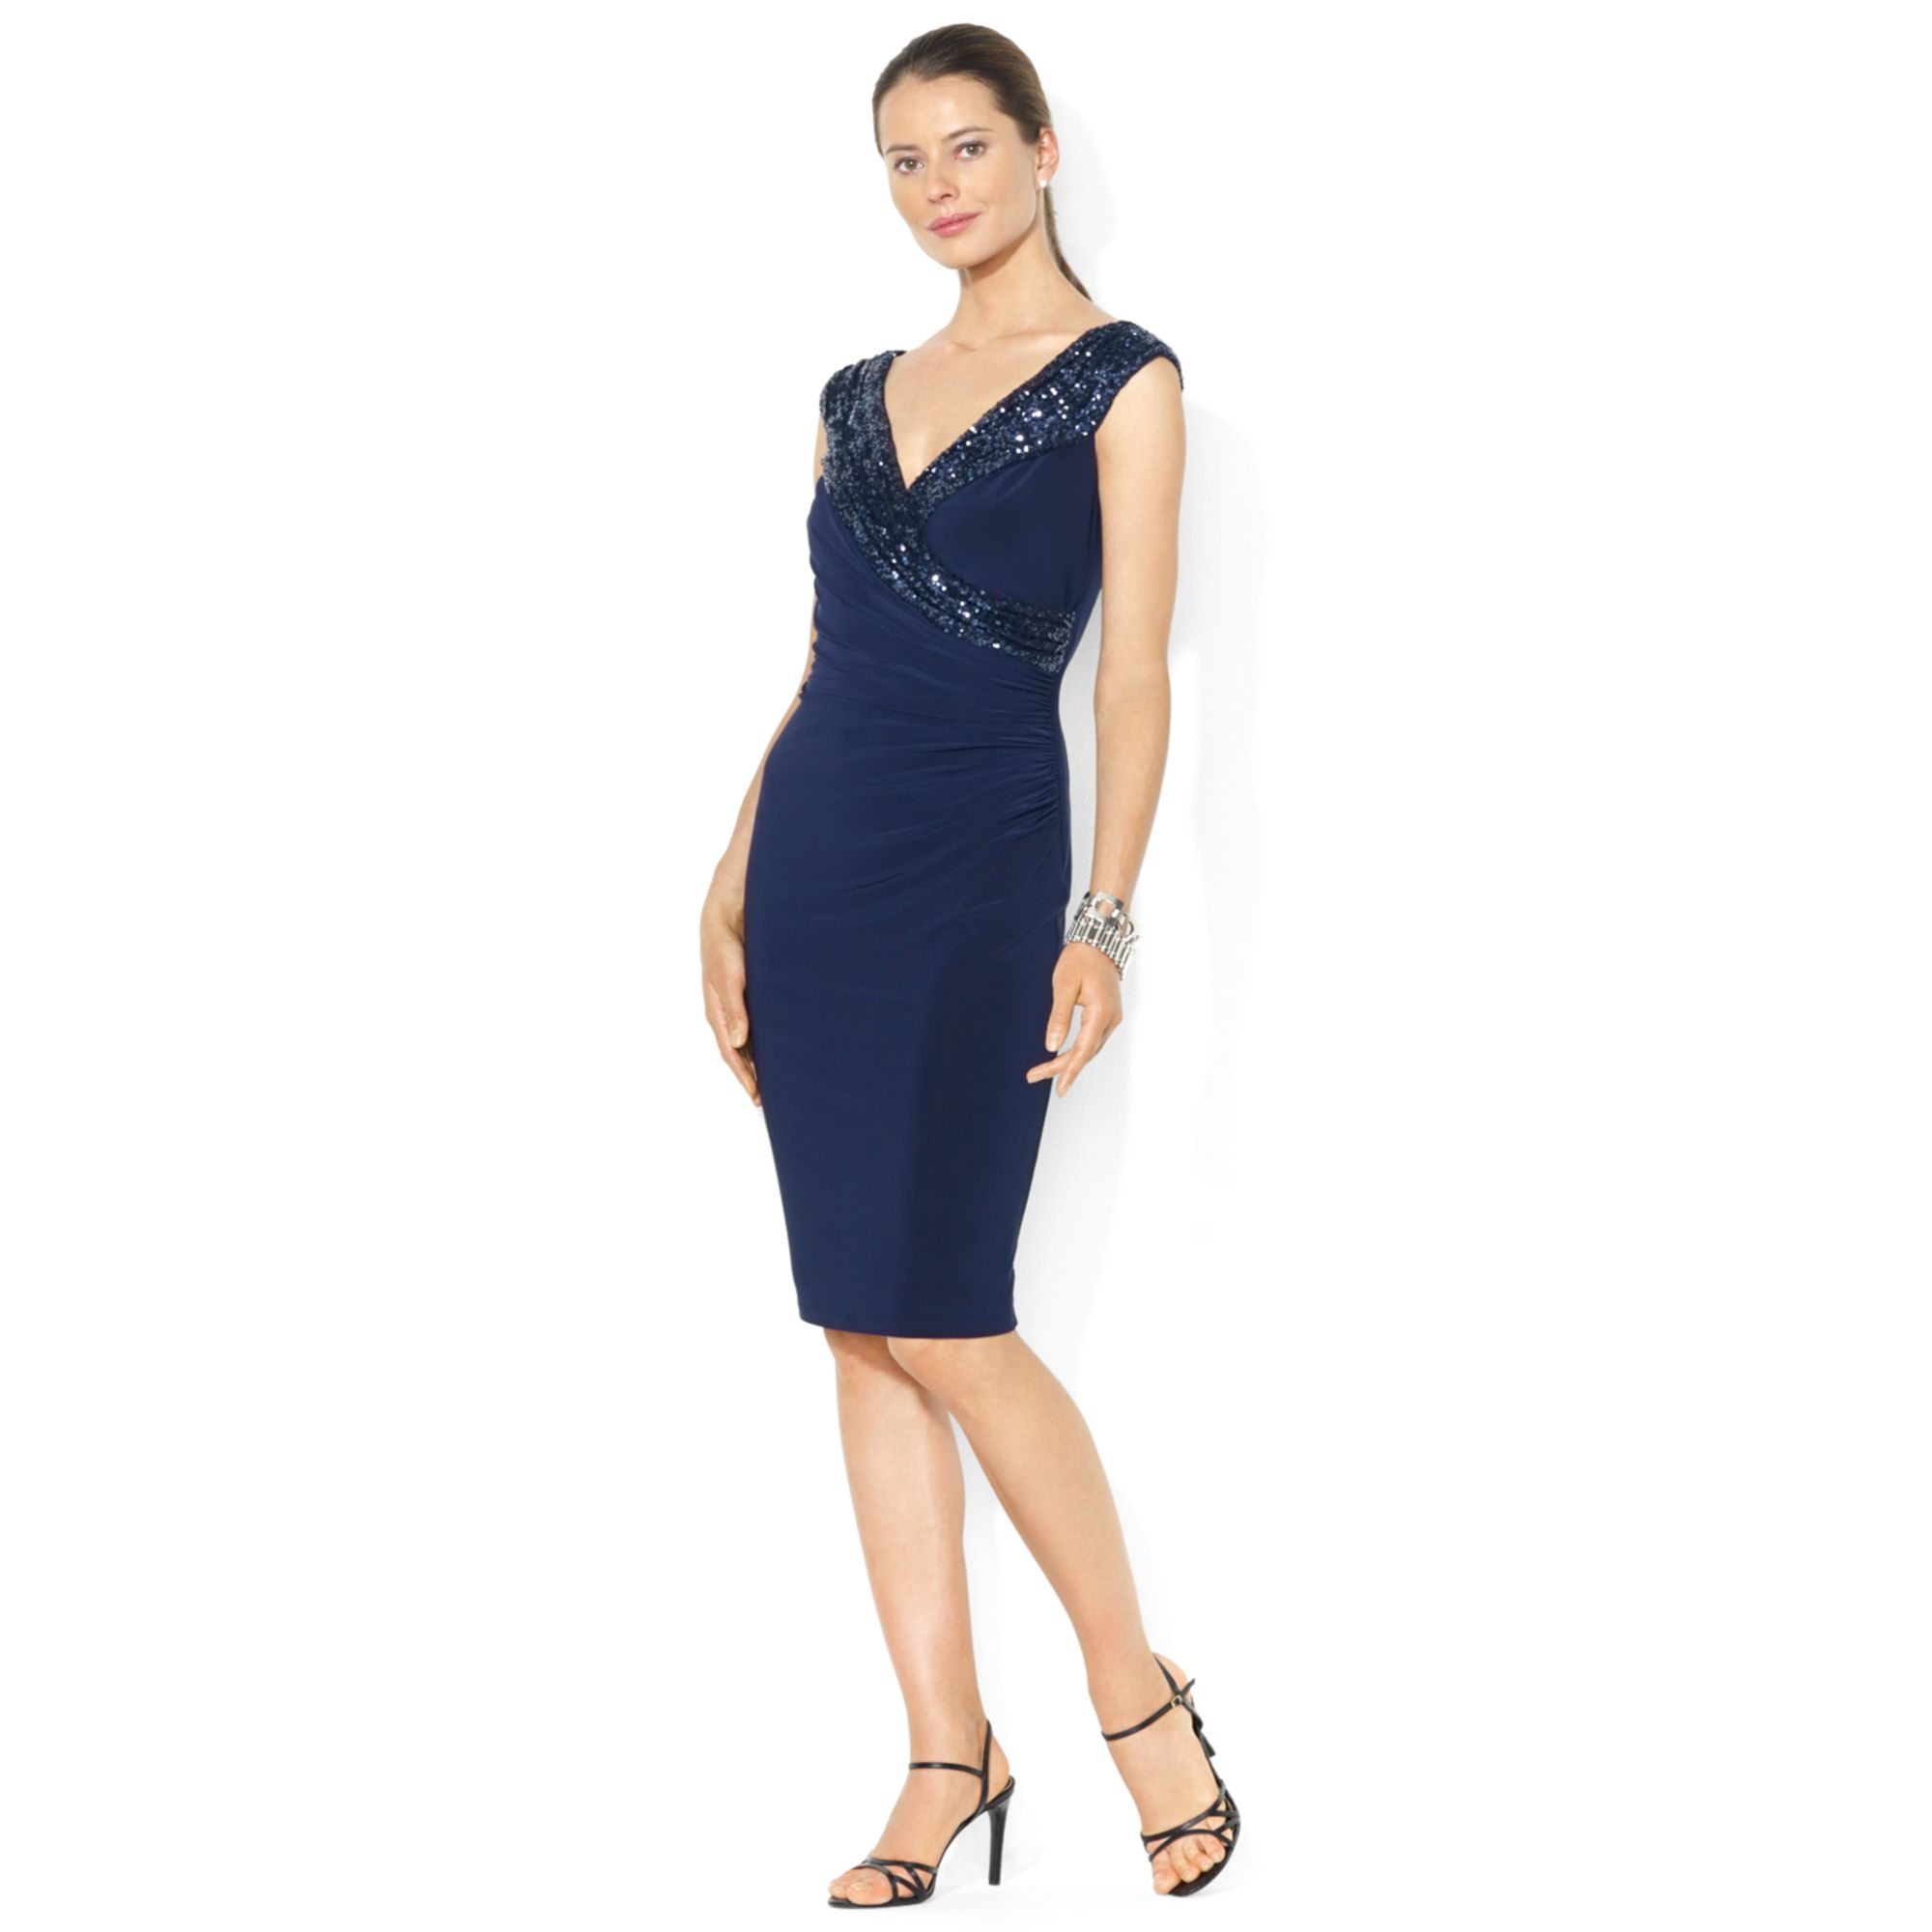 Lauren Ralph Lauren Väskor : Lauren by ralph sleeveless sequined dress in blue